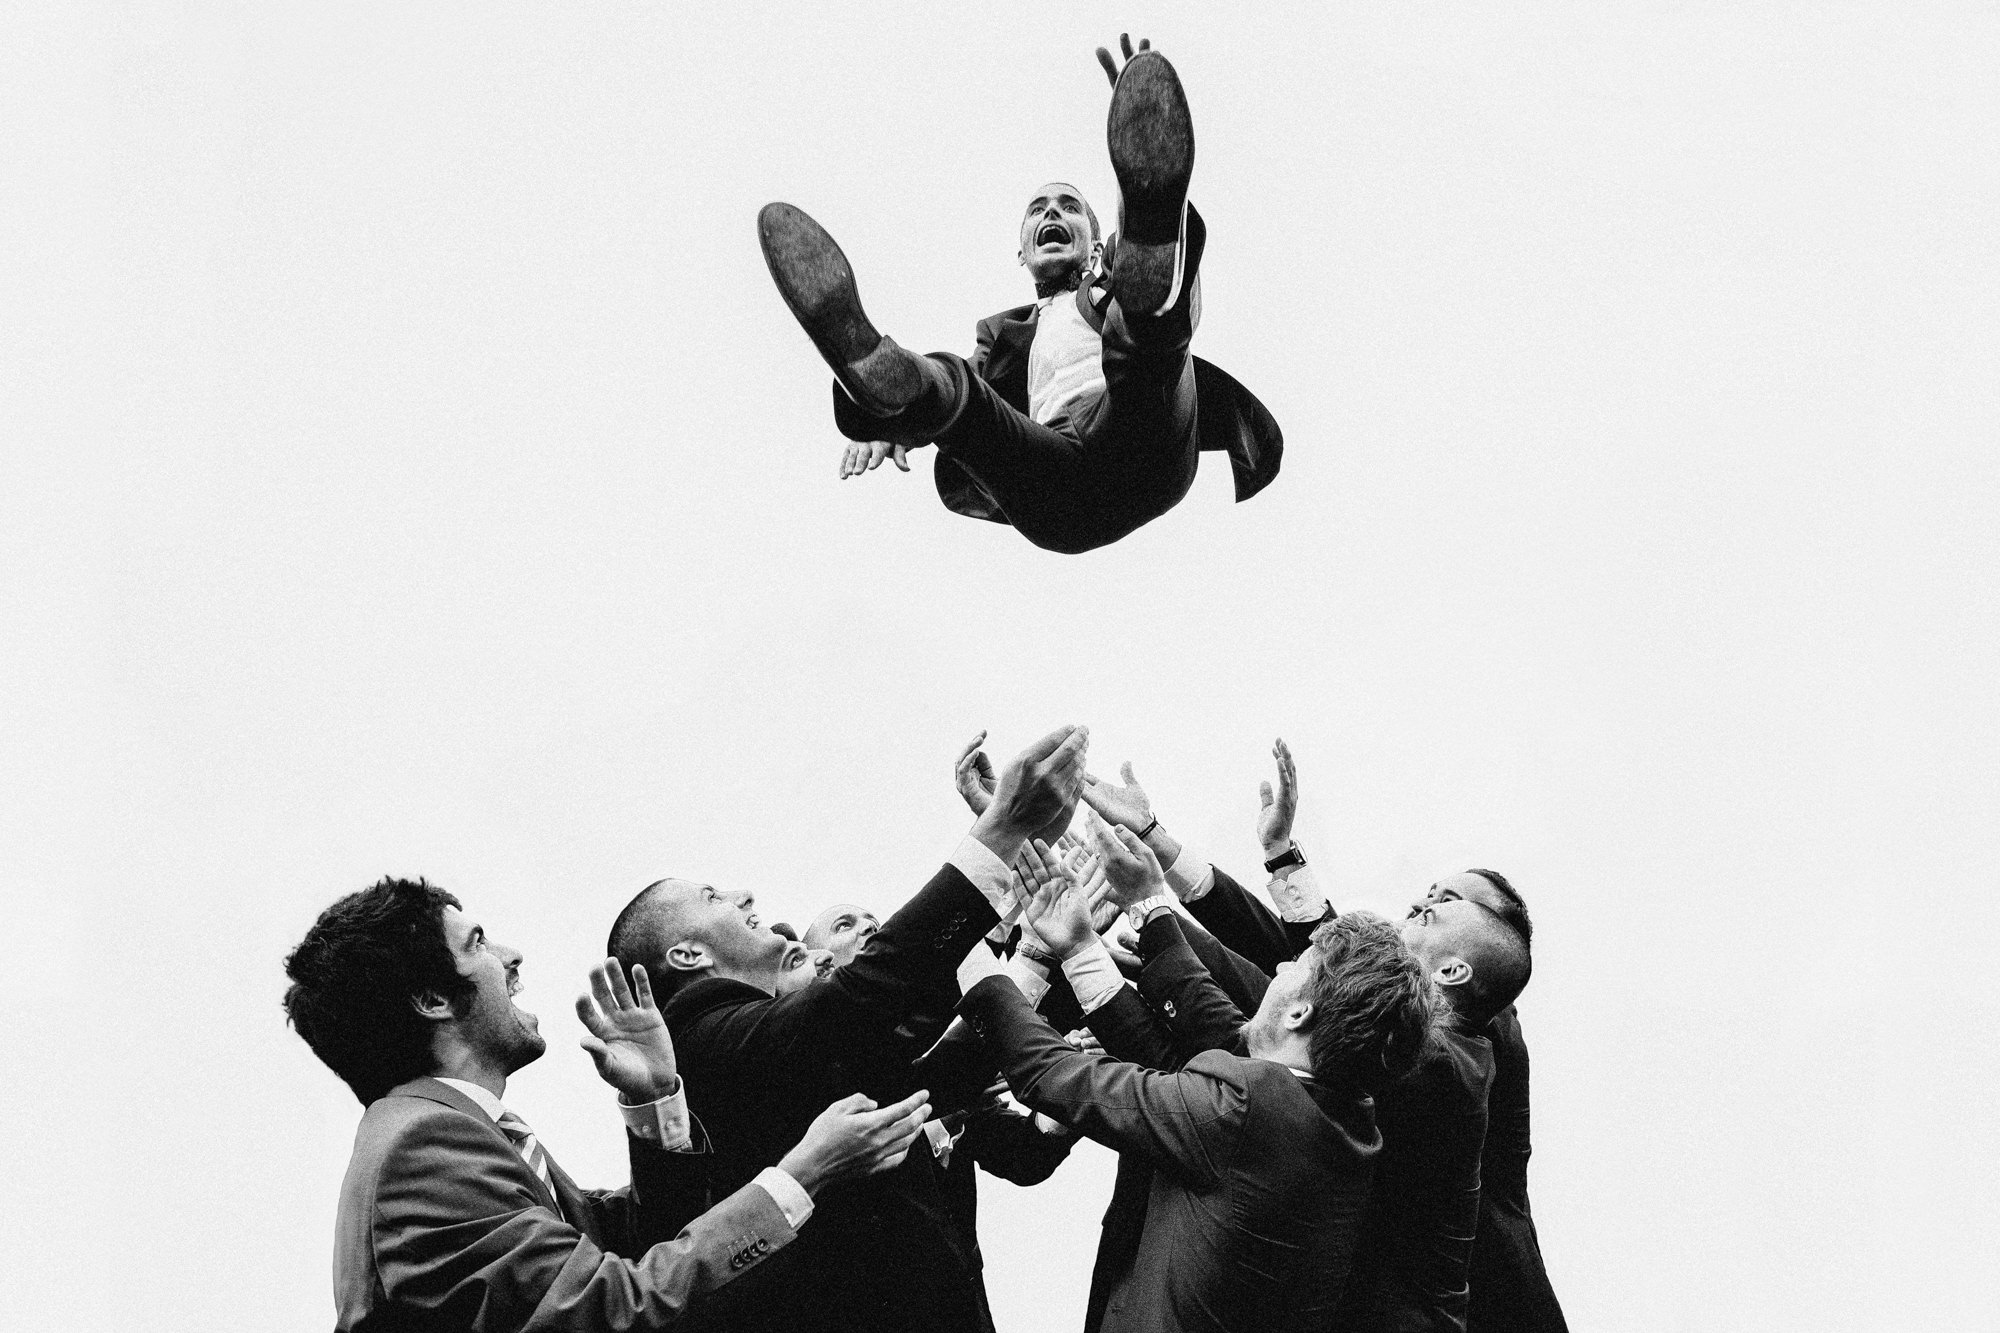 Moments groom tossed in air by guys Yves Schepers Belgium wedding photographers